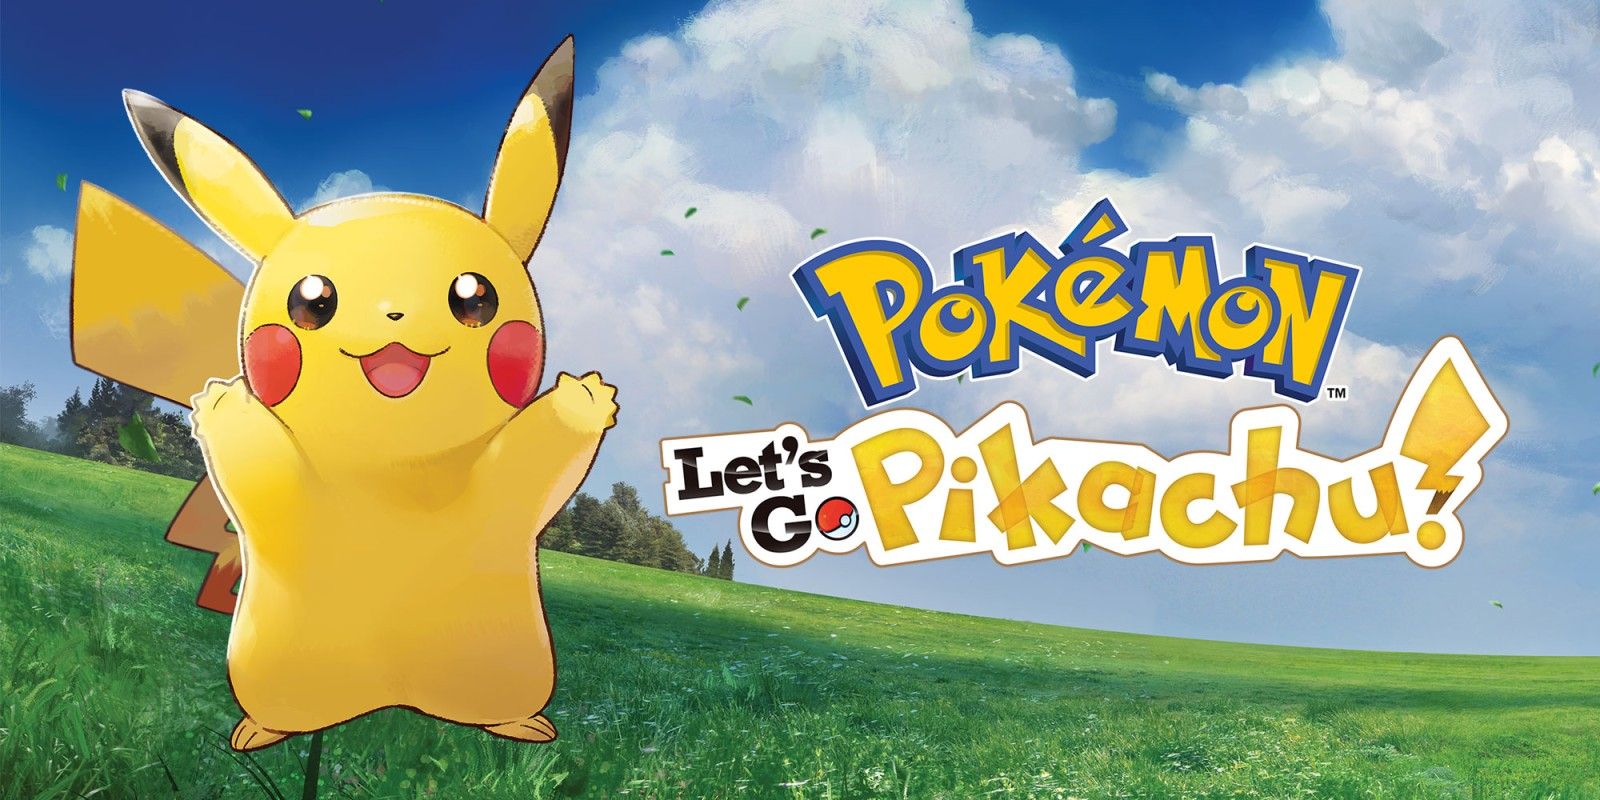 Pokémon: Let's Go Pikachu for Android Devices [Free]